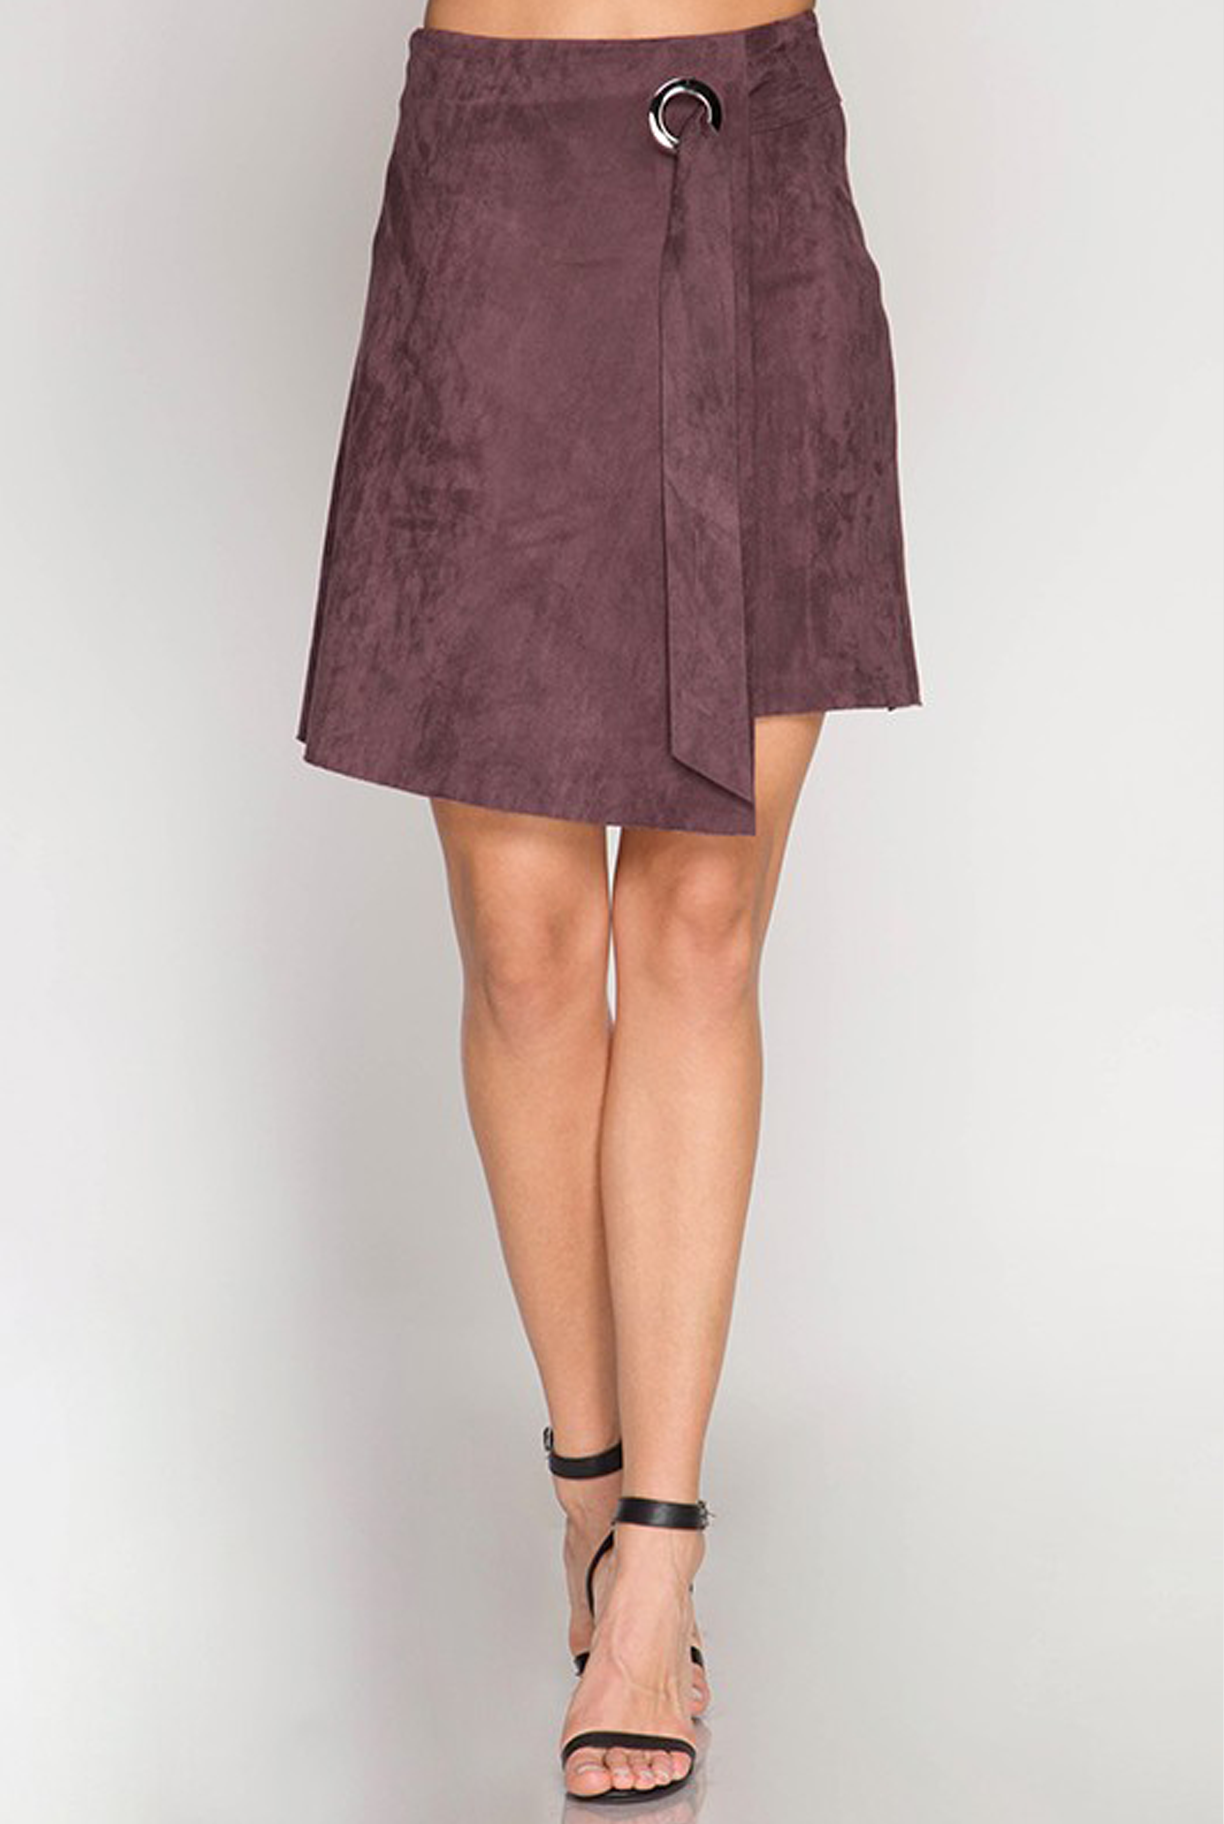 'Something So Strong' Skirt